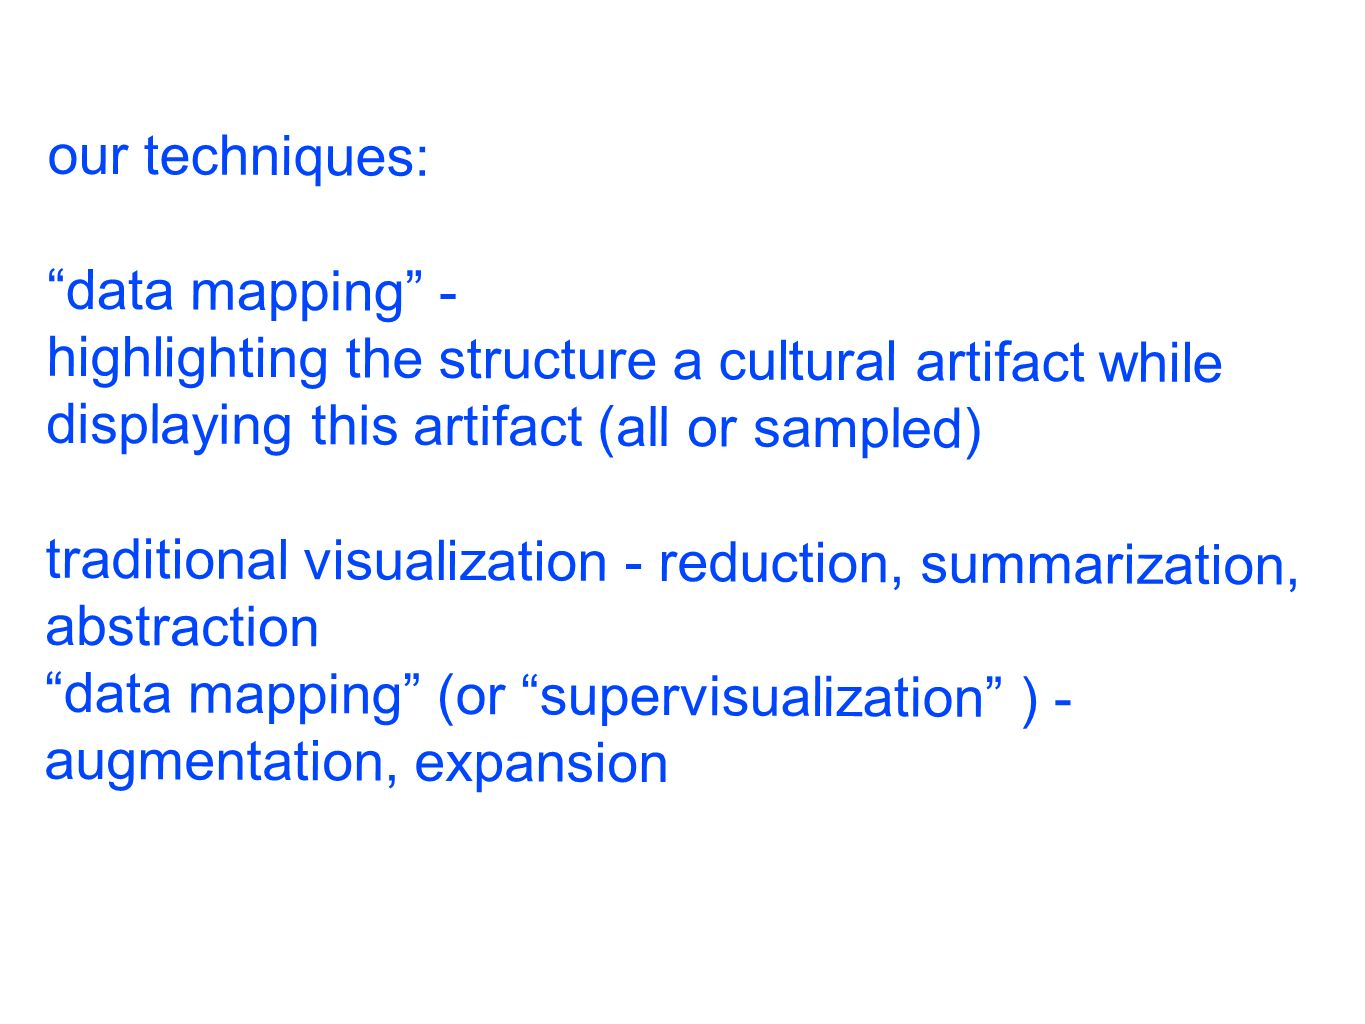 our techniques: data mapping - highlighting the structure a cultural artifact while displaying this artifact (all or sampled) traditional visualization - reduction, summarization, abstraction data mapping (or supervisualization ) - augmentation, expansion